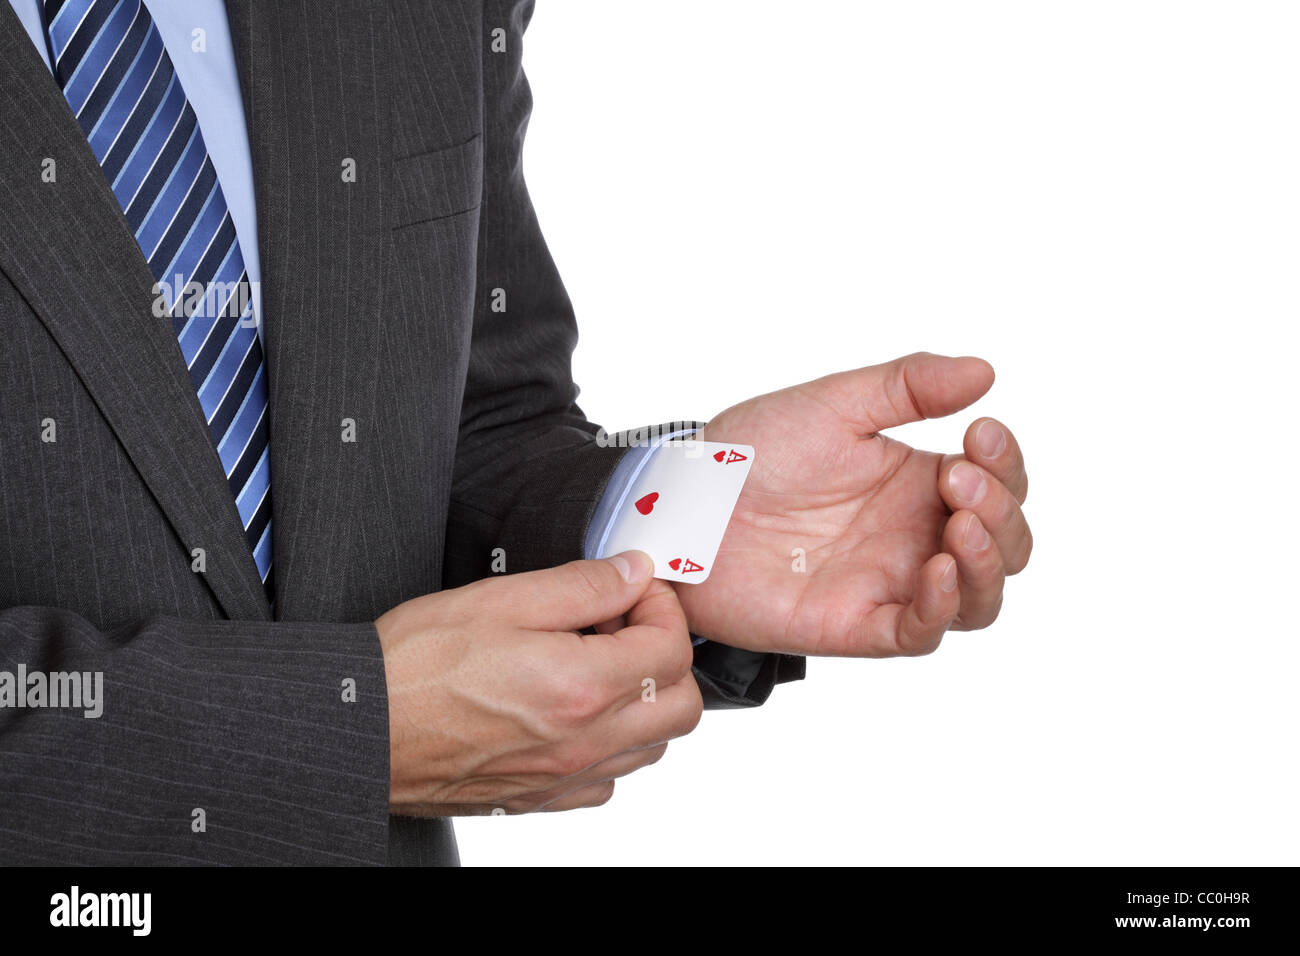 Ace up your sleeve - Stock Image